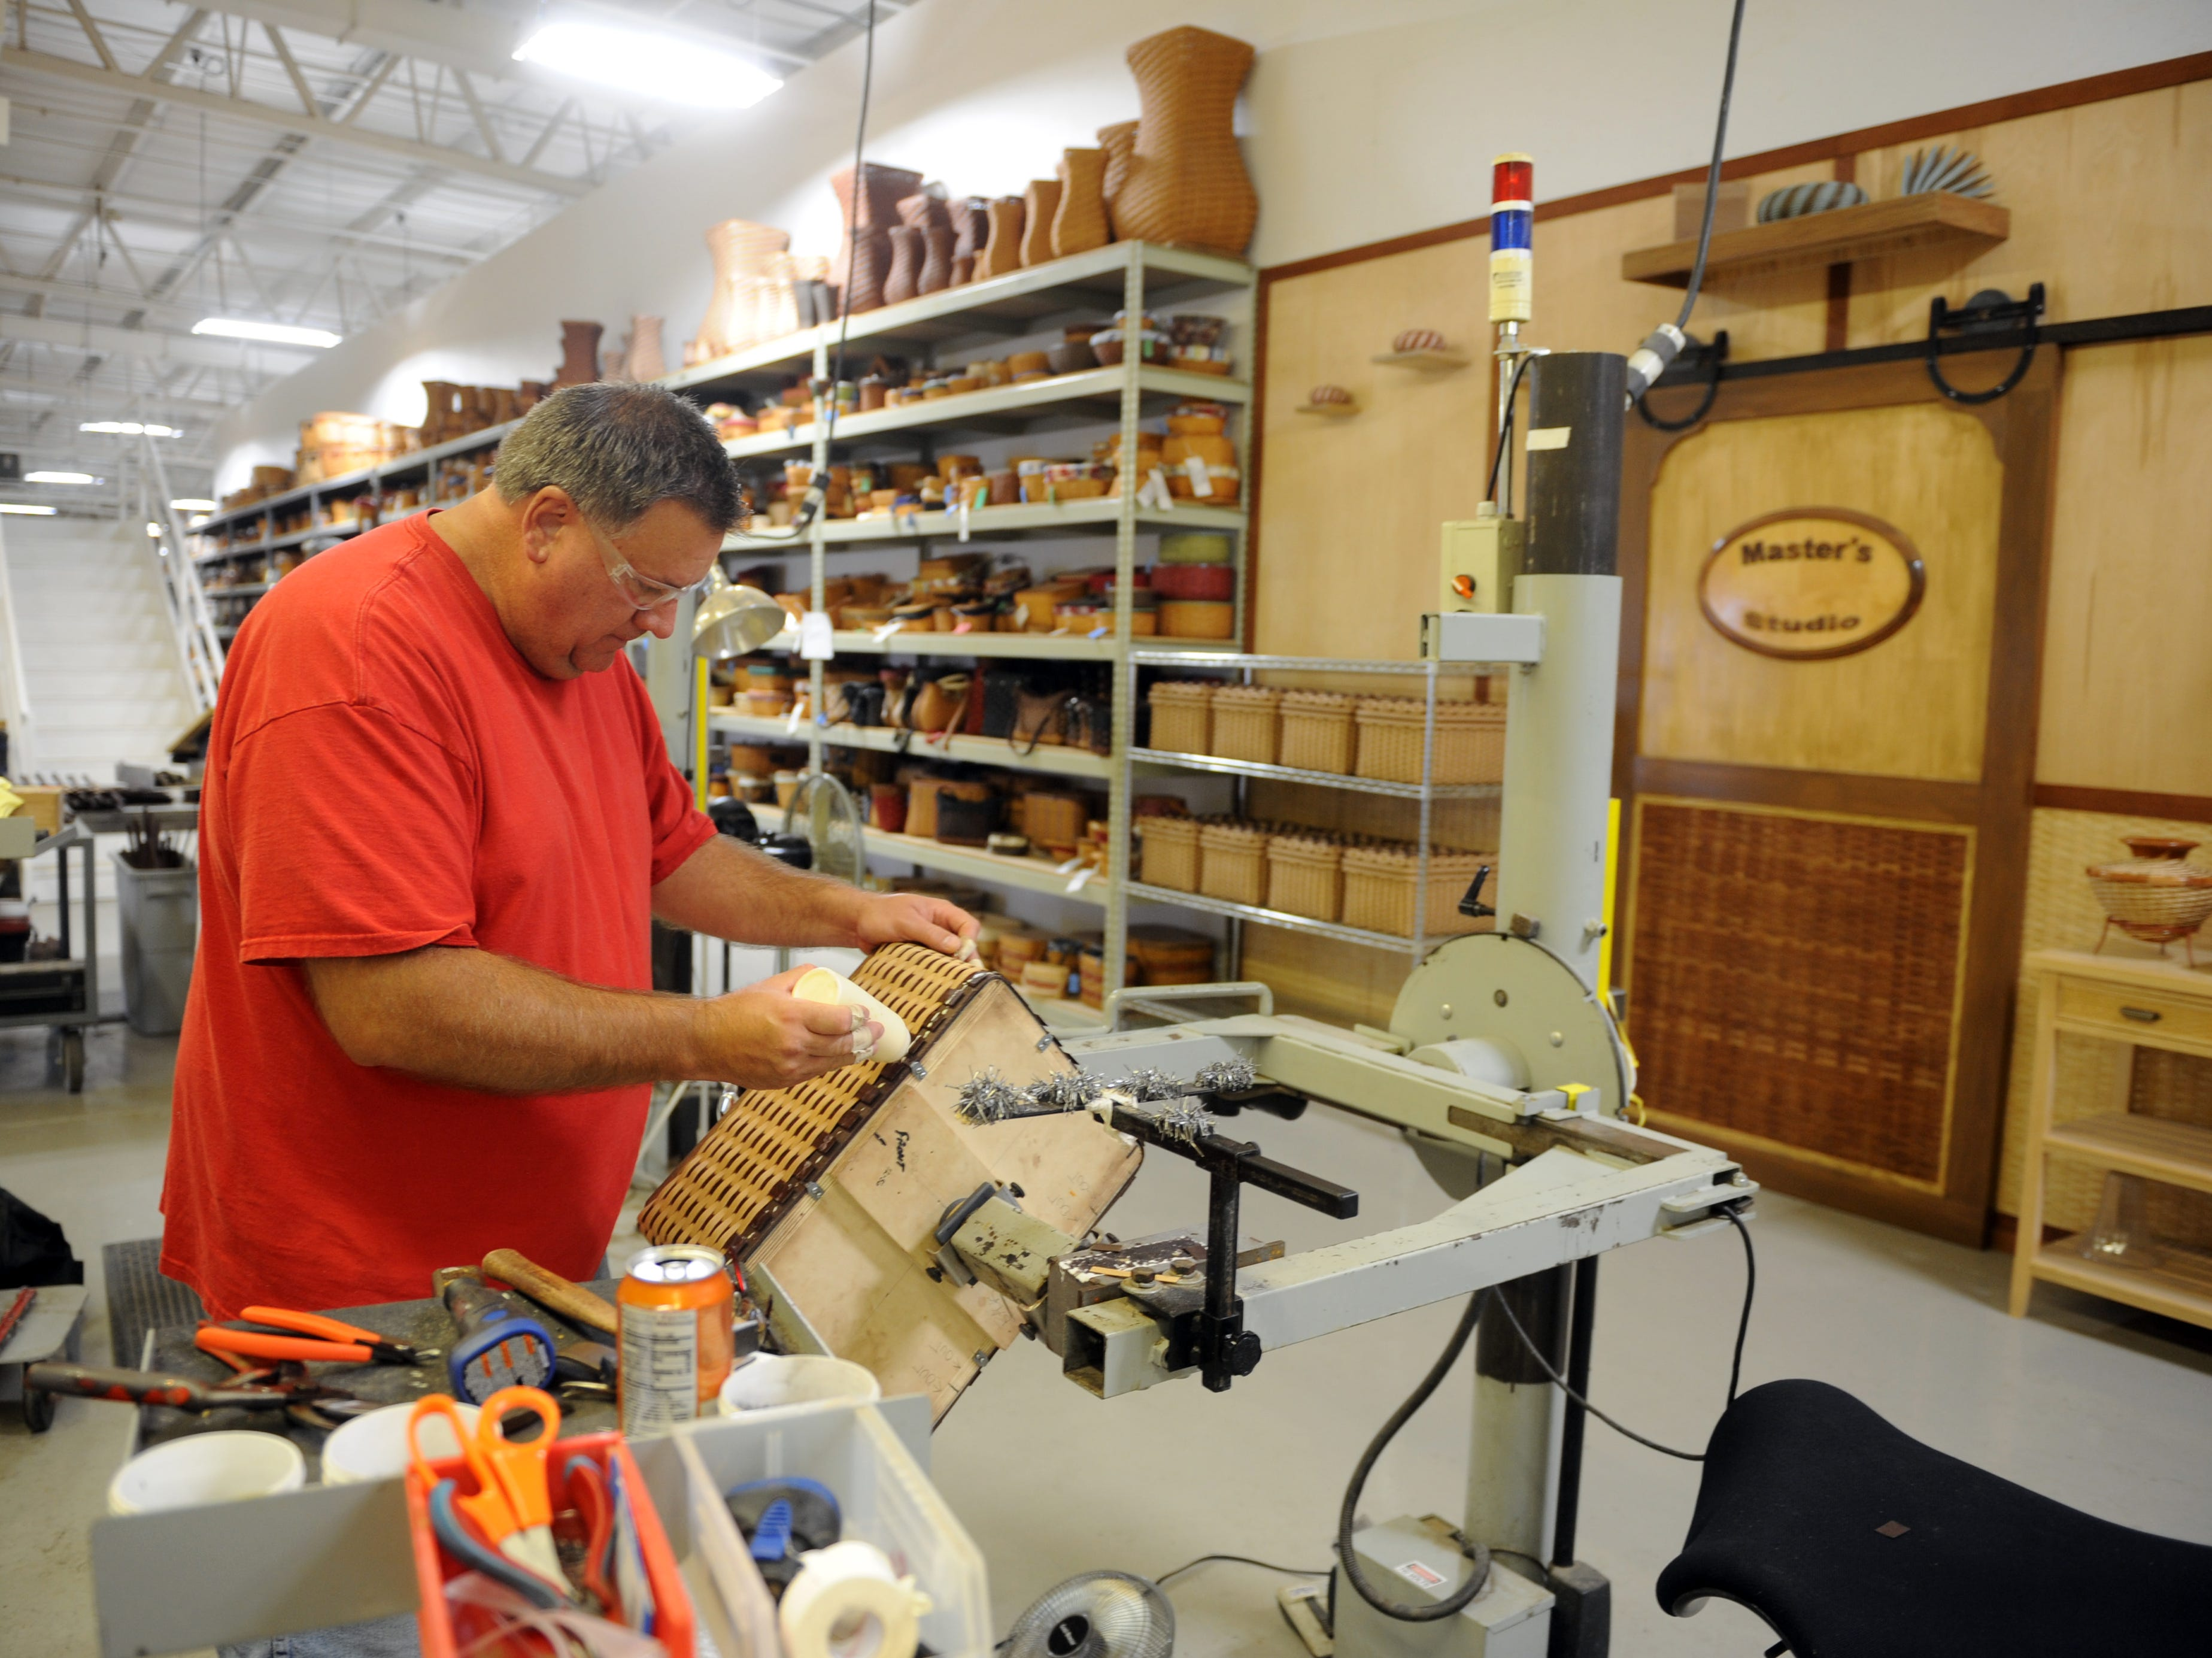 Mike Carpenter makes a Master's Studio picnic basket. Dave Longaberger founded the Longaberger Company in 1973 in Dresden. Currently, more than 20,000 home consultants sell Longaberger baskets, accessories and other products.